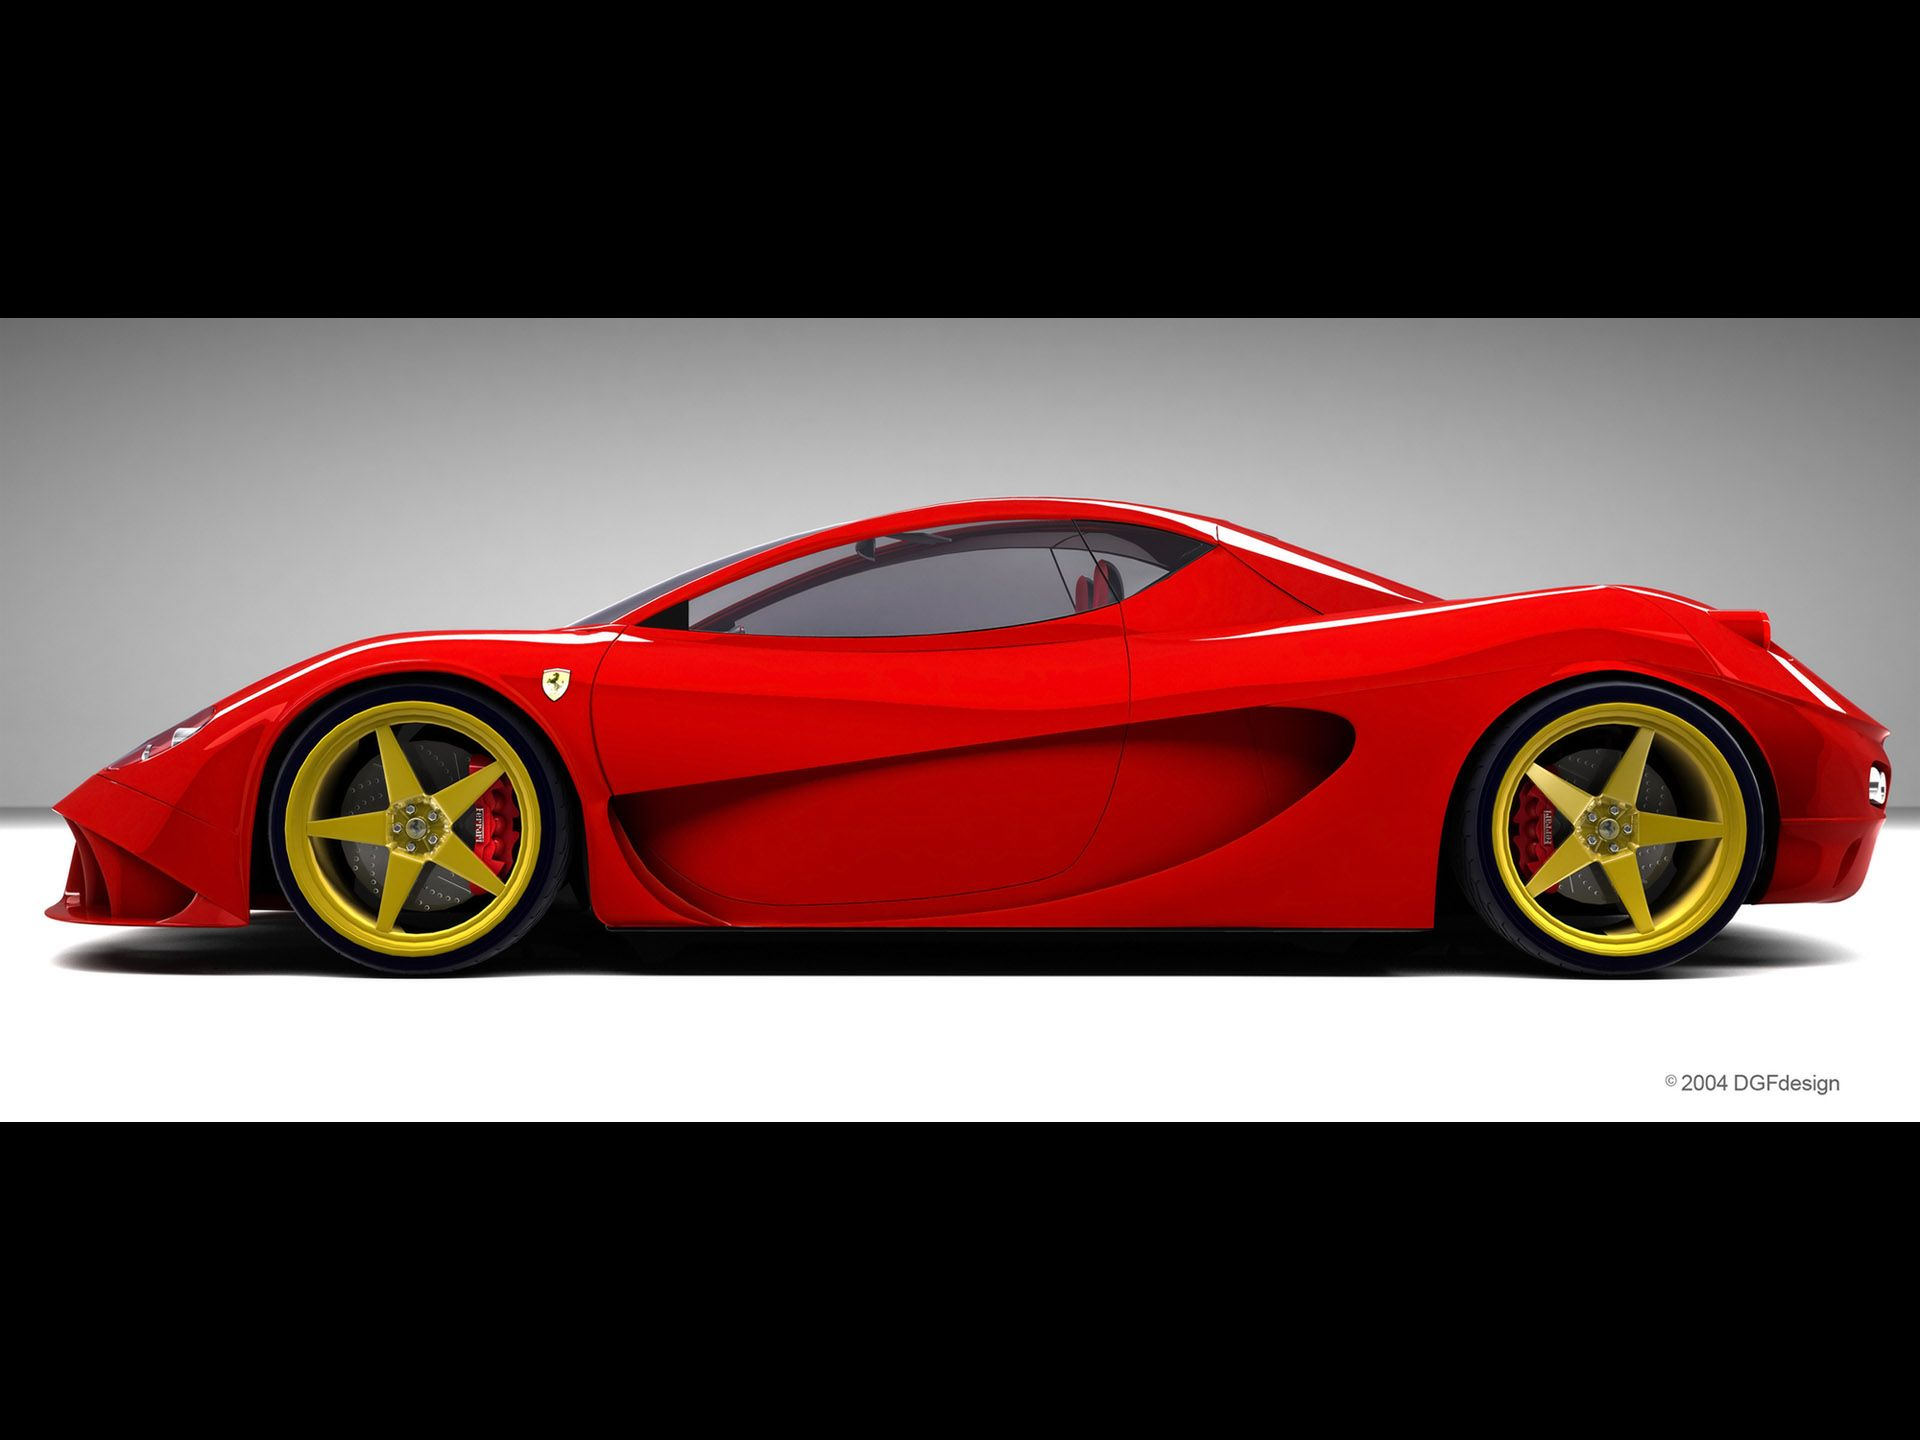 Cool Sports Cars Ferrari: COOL CARS I LIKE